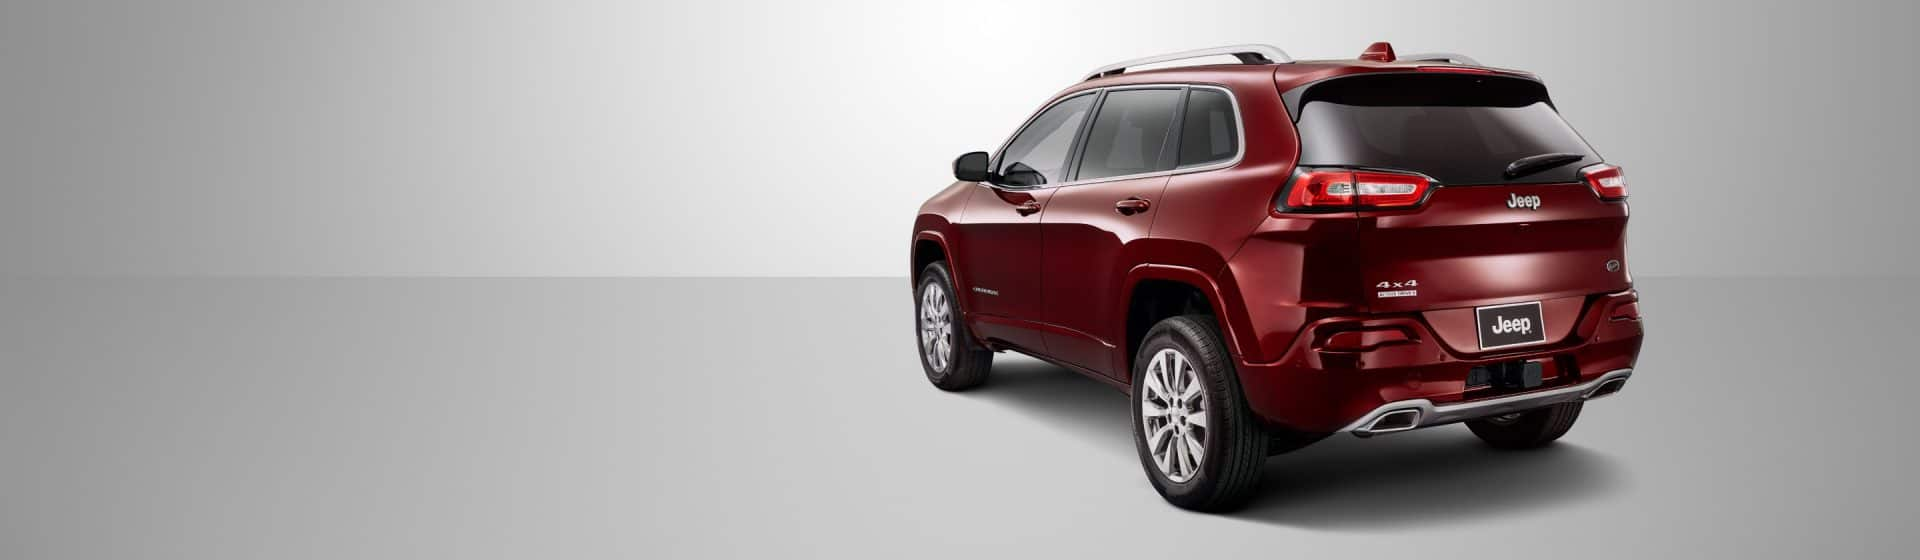 2018 jeep cherokee. fine cherokee 2018 jeep cherokee rear side view throughout jeep cherokee